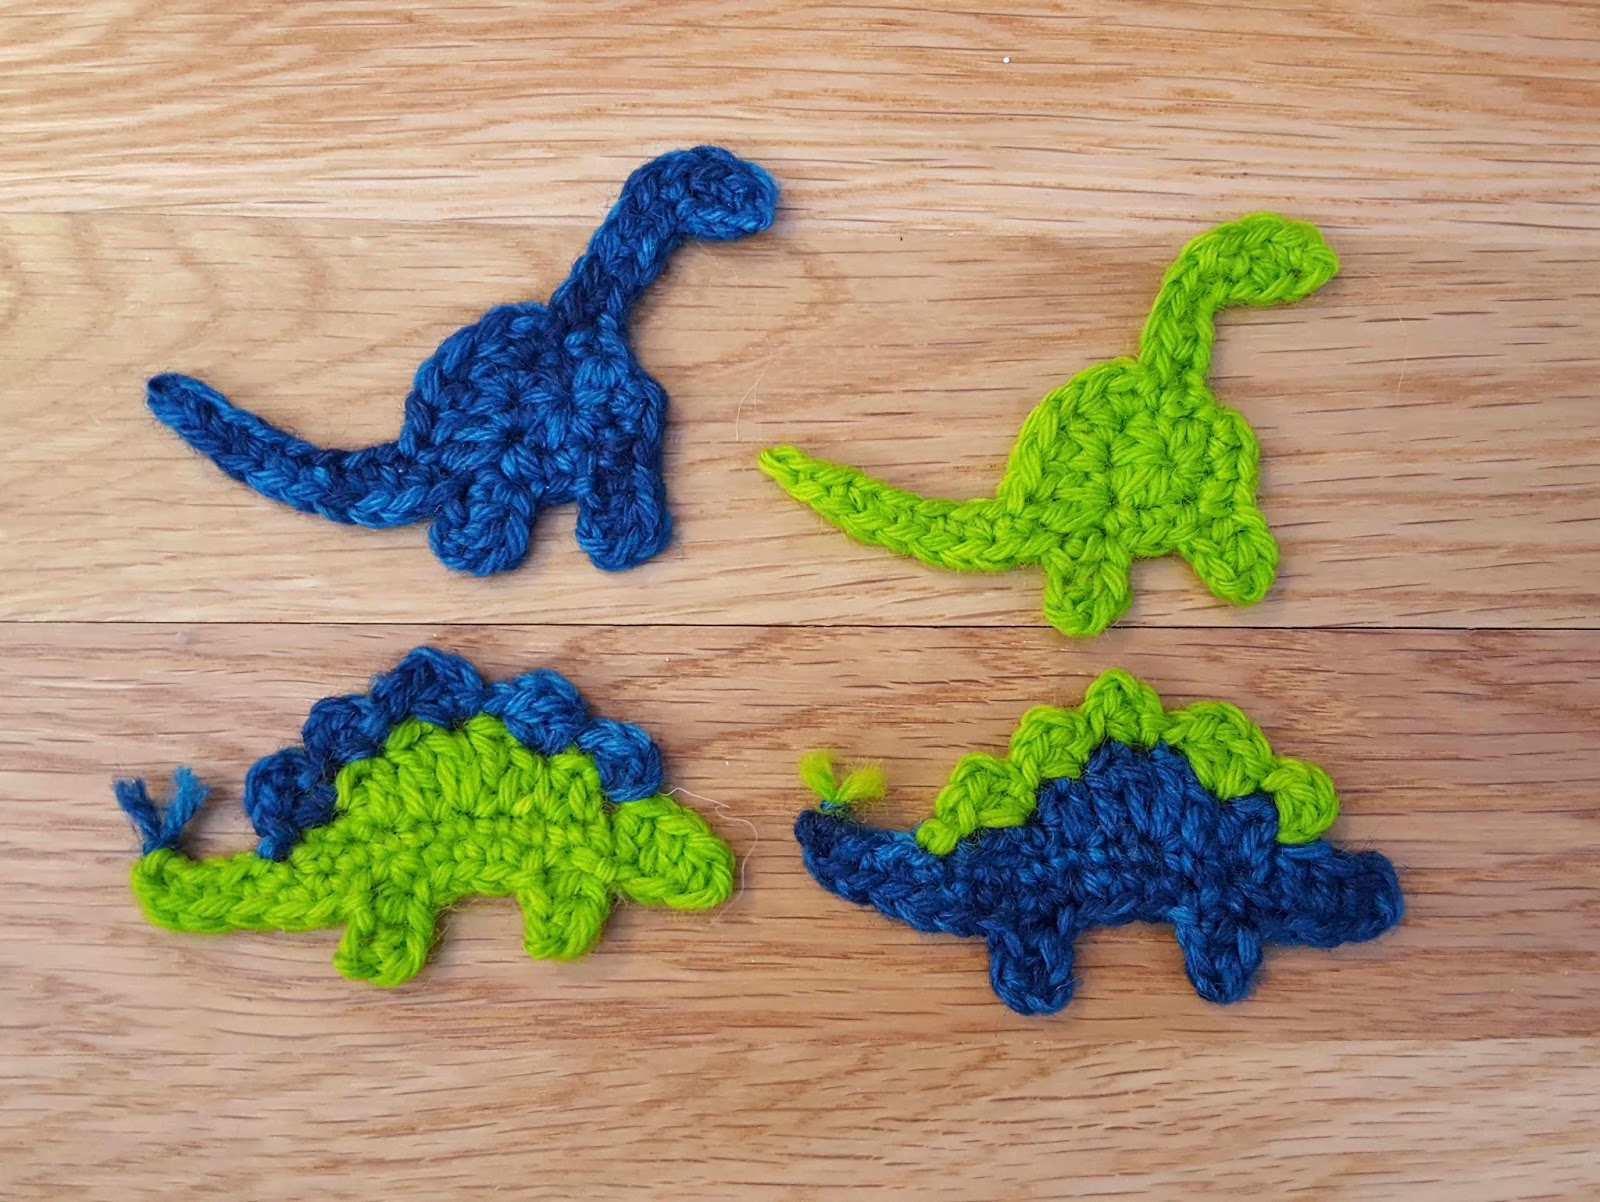 Chemknits Crochet Dinosaur Appliques For Party Hats